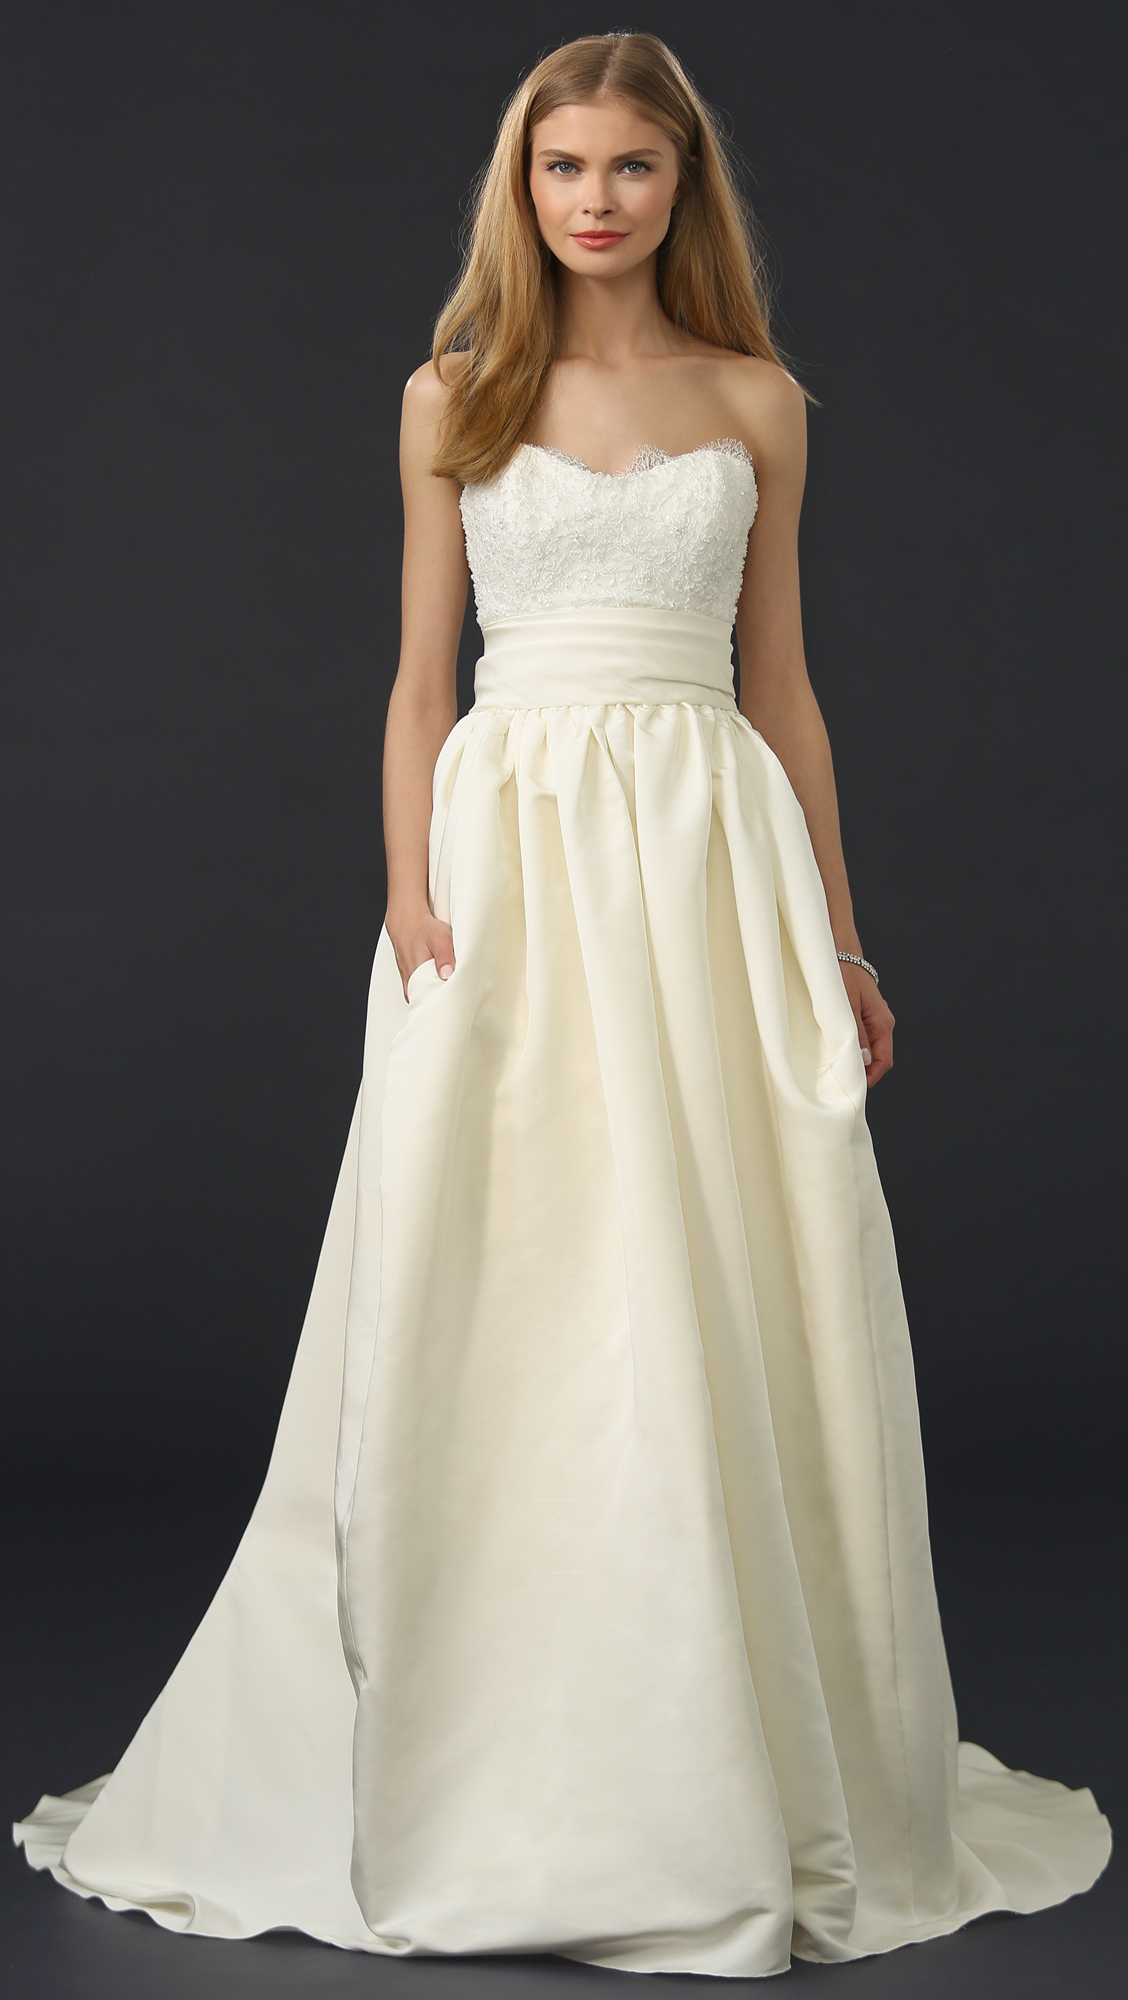 Marchesa Silk Faille Ballgown Skirt in White - Lyst